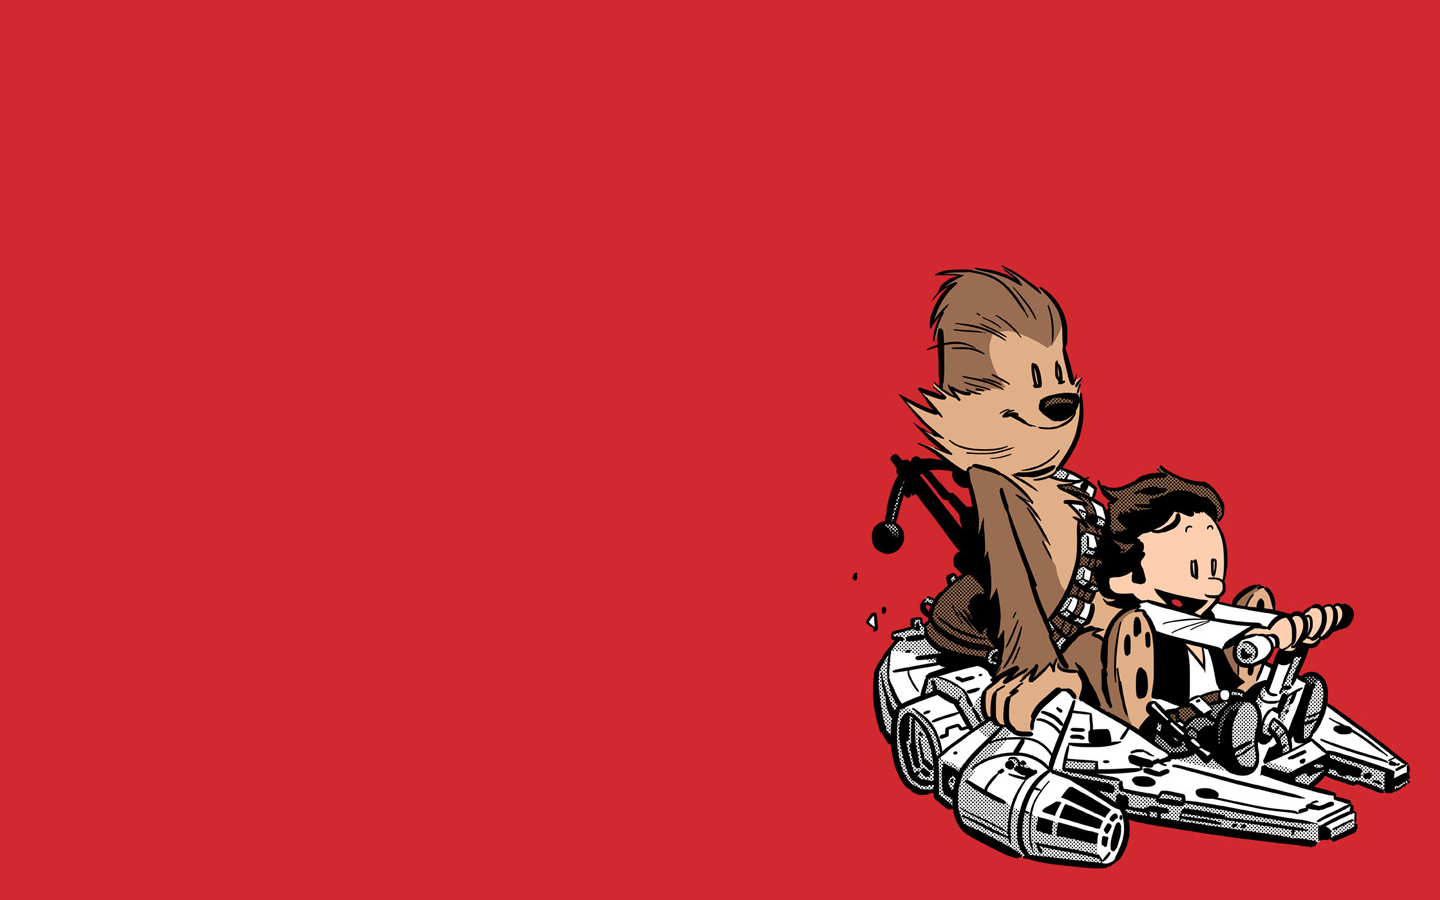 Han Solo Wallpapers - Wallpaper Cave